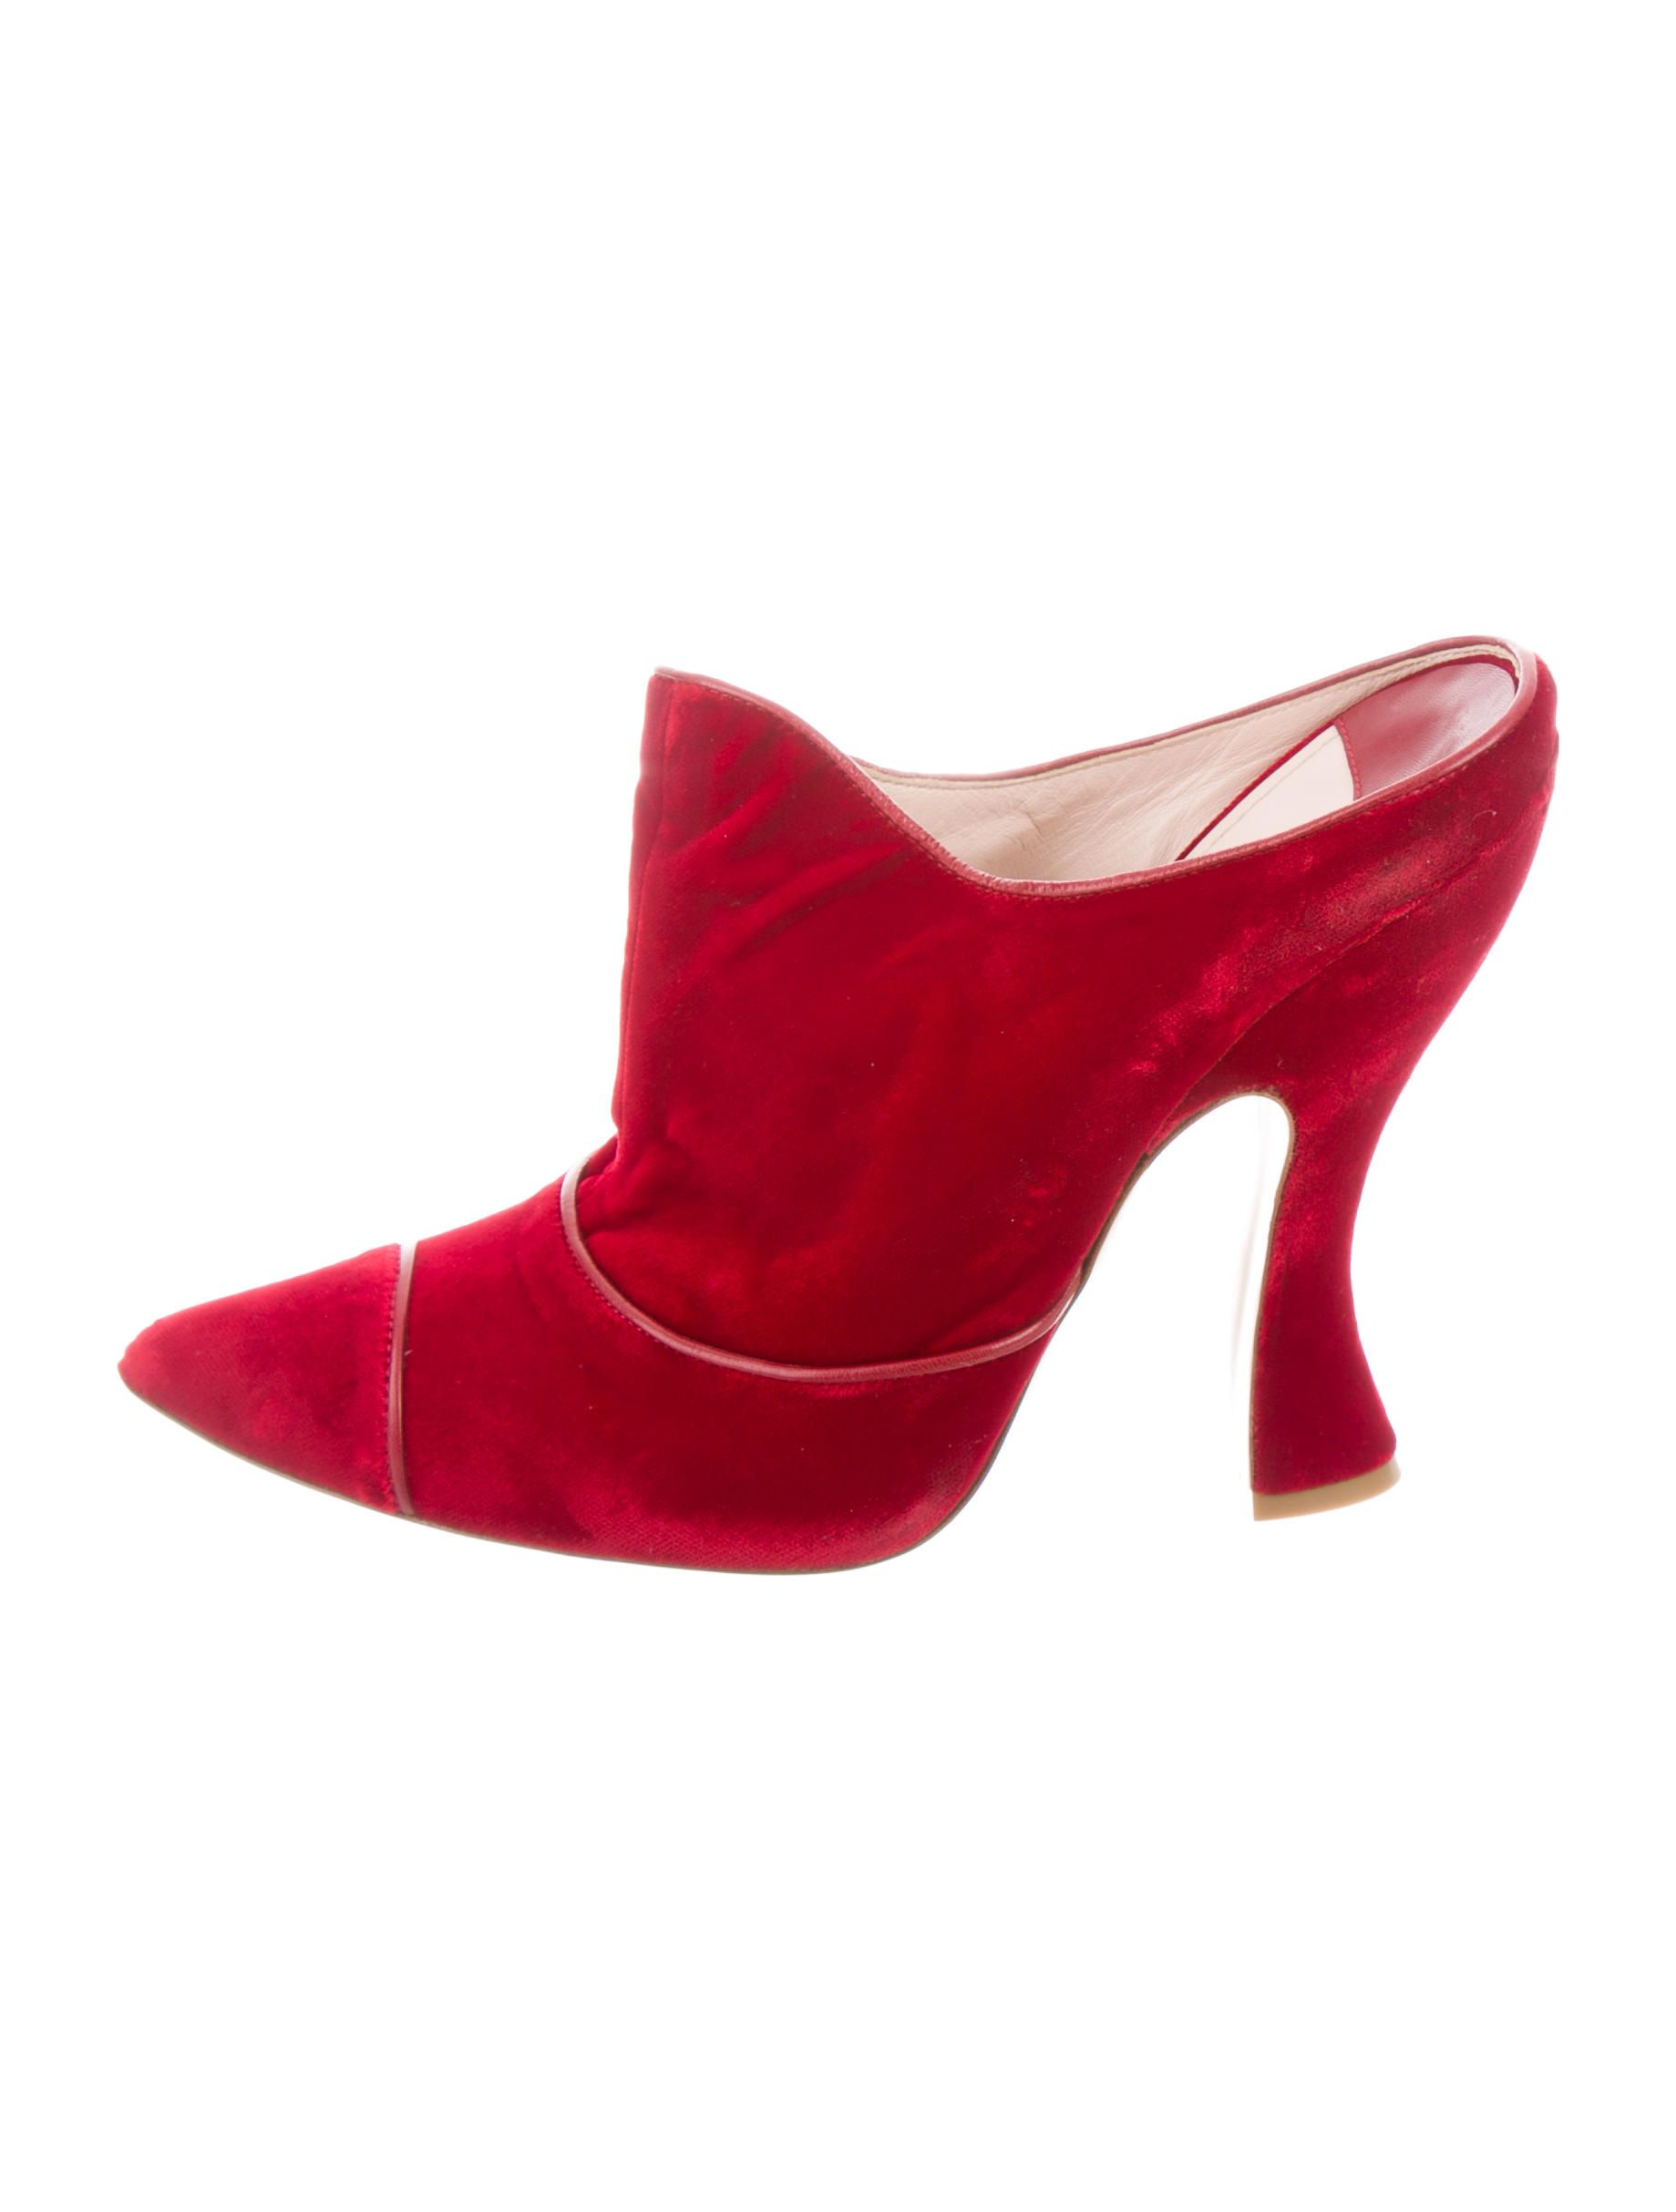 Red velvet Miu Miu pointed-toe mules with leather trim and sculpted heels.